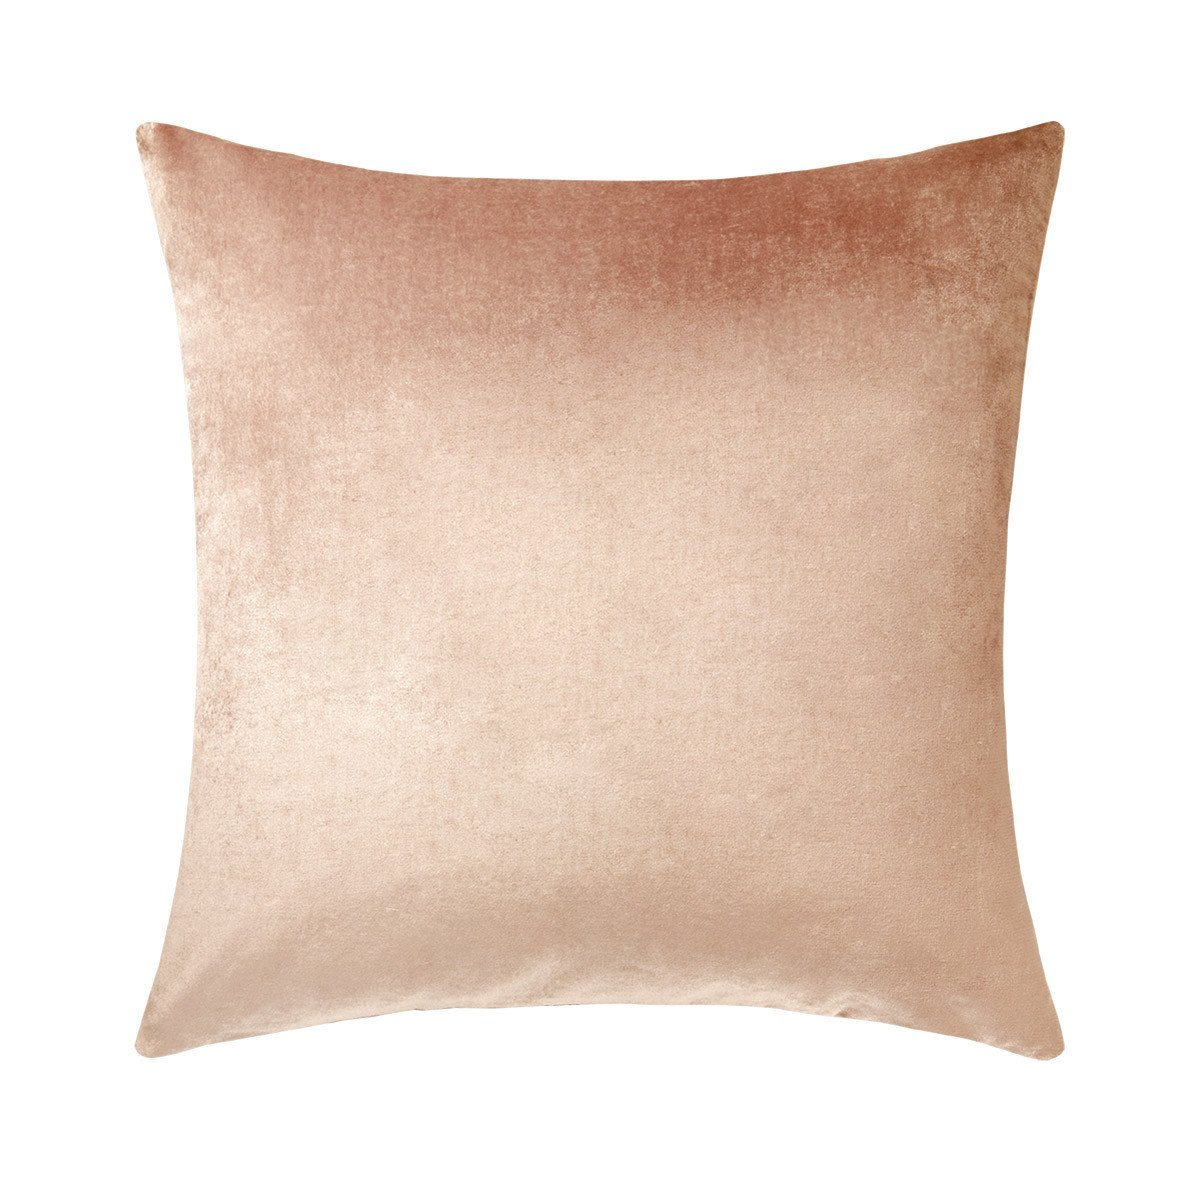 Berlingot Amadou Decorative Pillow by Iosis